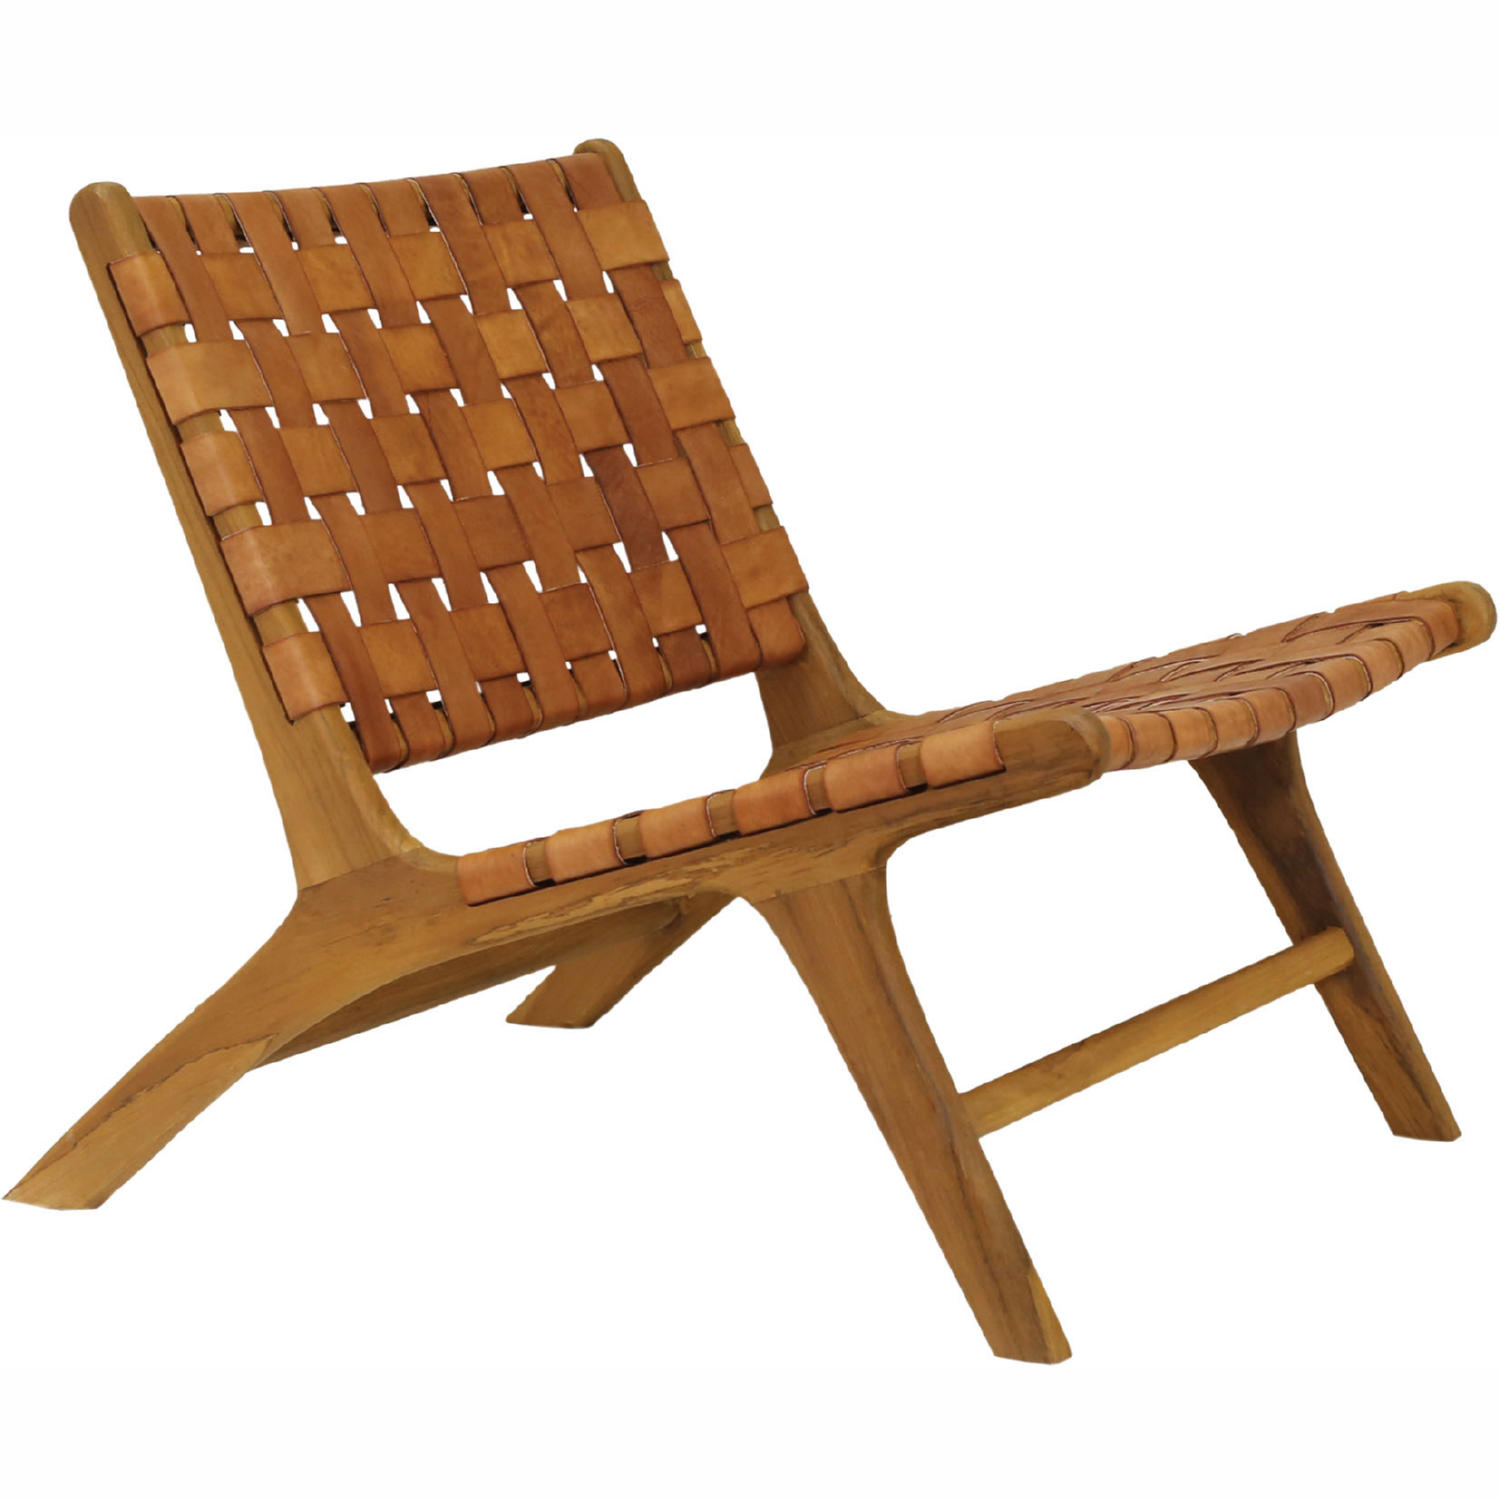 Surprising Light Marty Accent Chair In Brown Leather Teak By Elk Home Machost Co Dining Chair Design Ideas Machostcouk